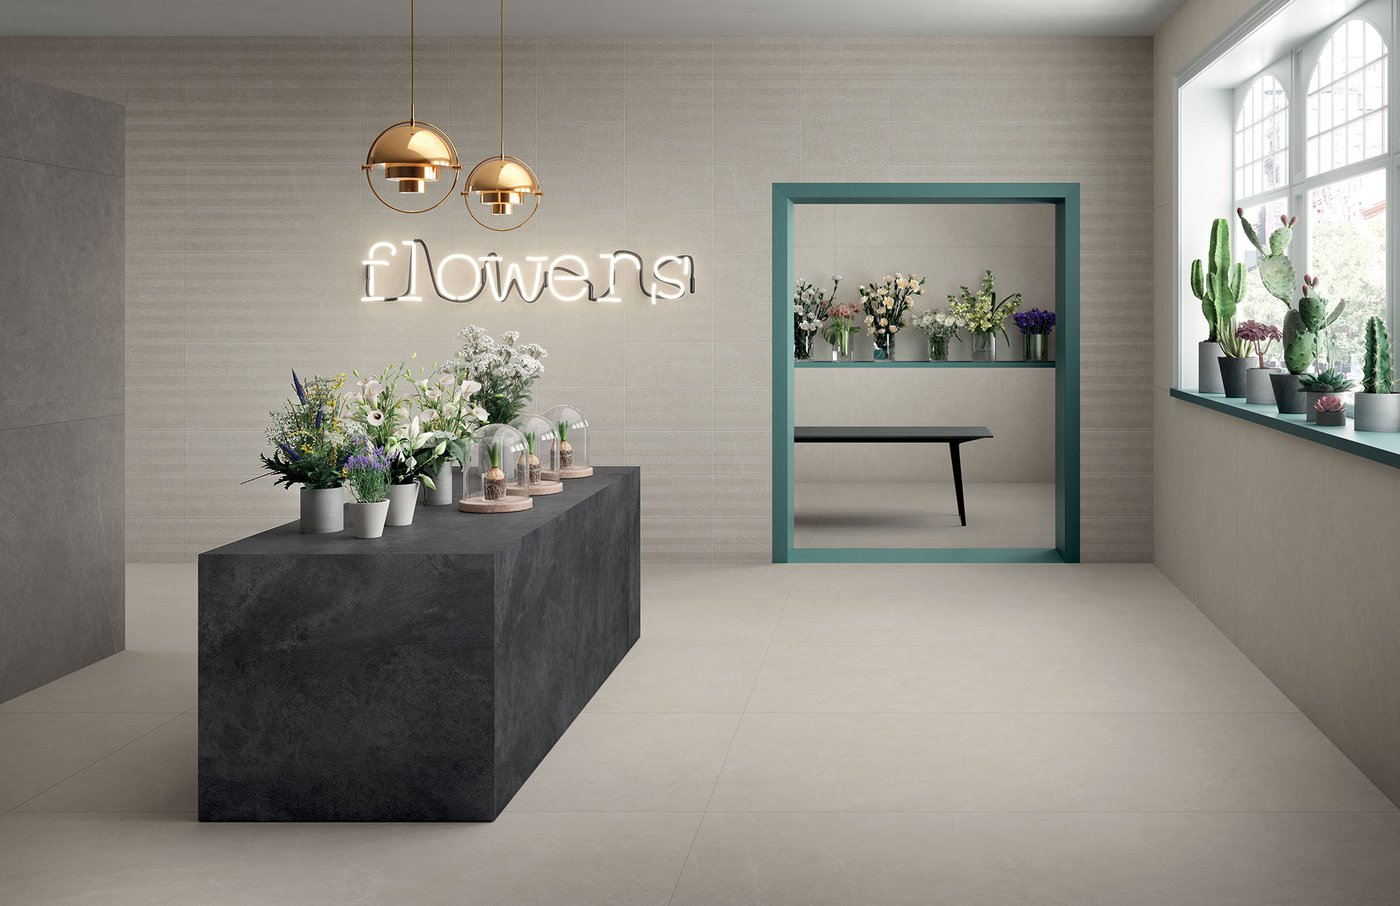 Generated Ark Flowershop Light.jpg.1400x1400 Q85